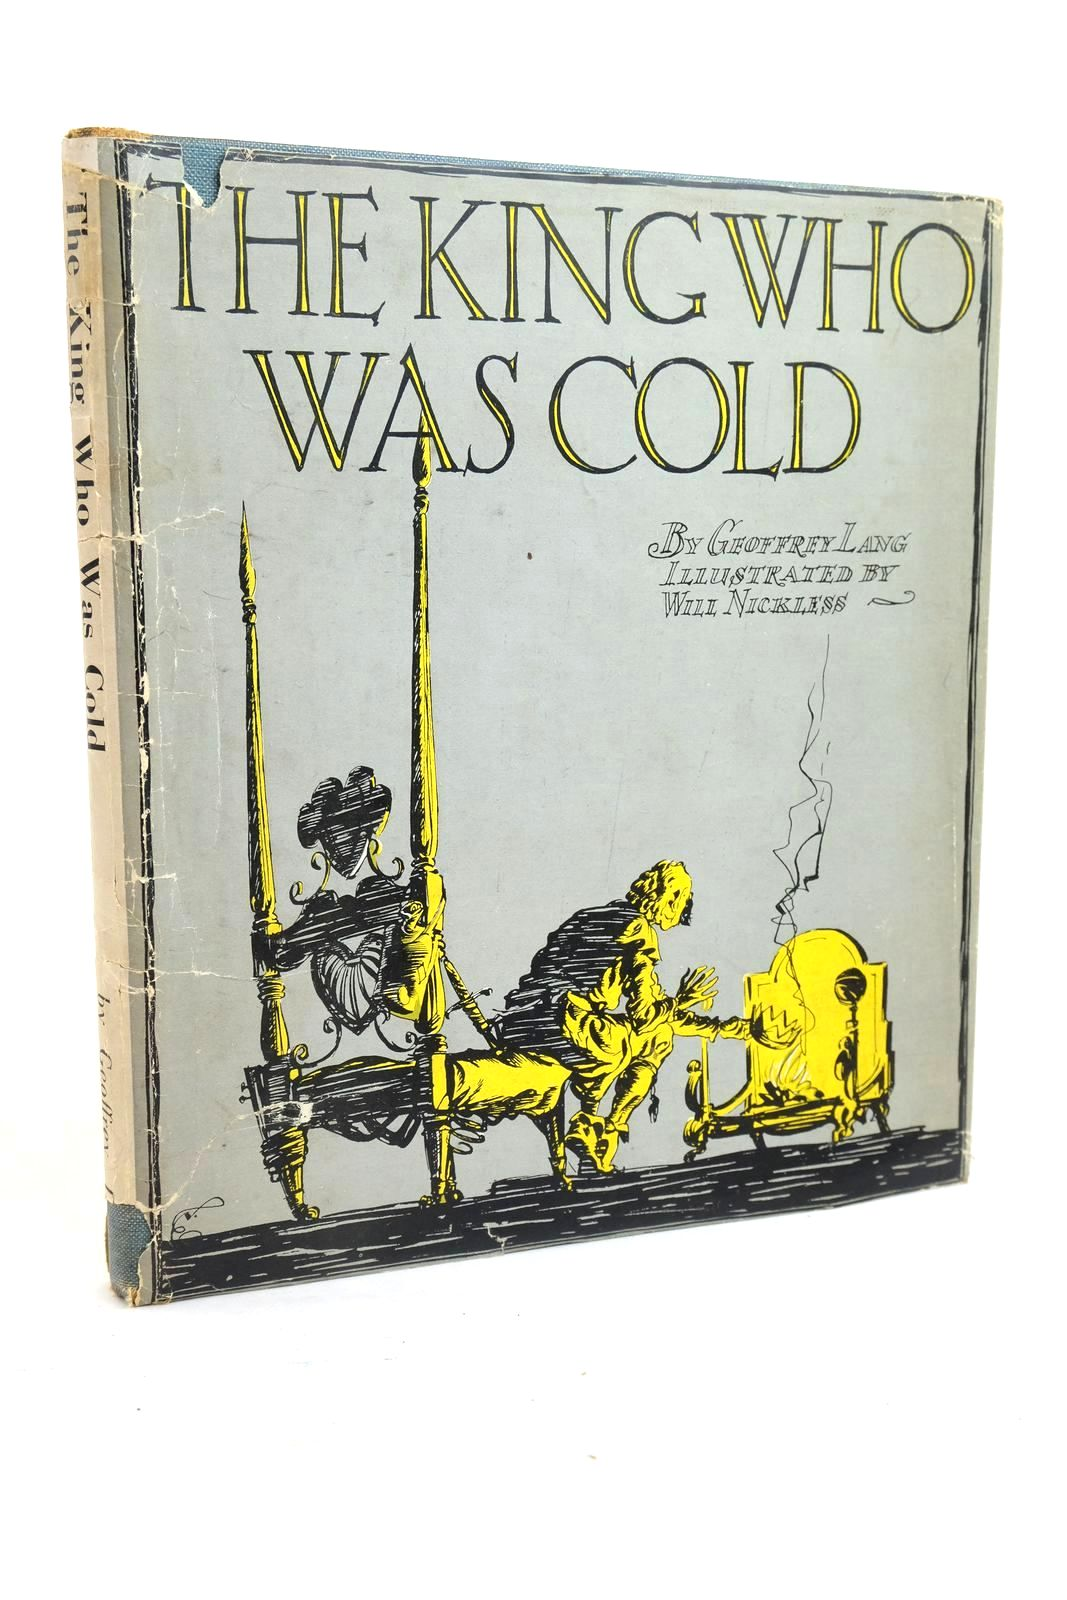 Photo of THE KING WHO WAS COLD written by Lang, Geoffrey illustrated by Nickless, Will published by Herbert Jenkins Limited (STOCK CODE: 1321160)  for sale by Stella & Rose's Books